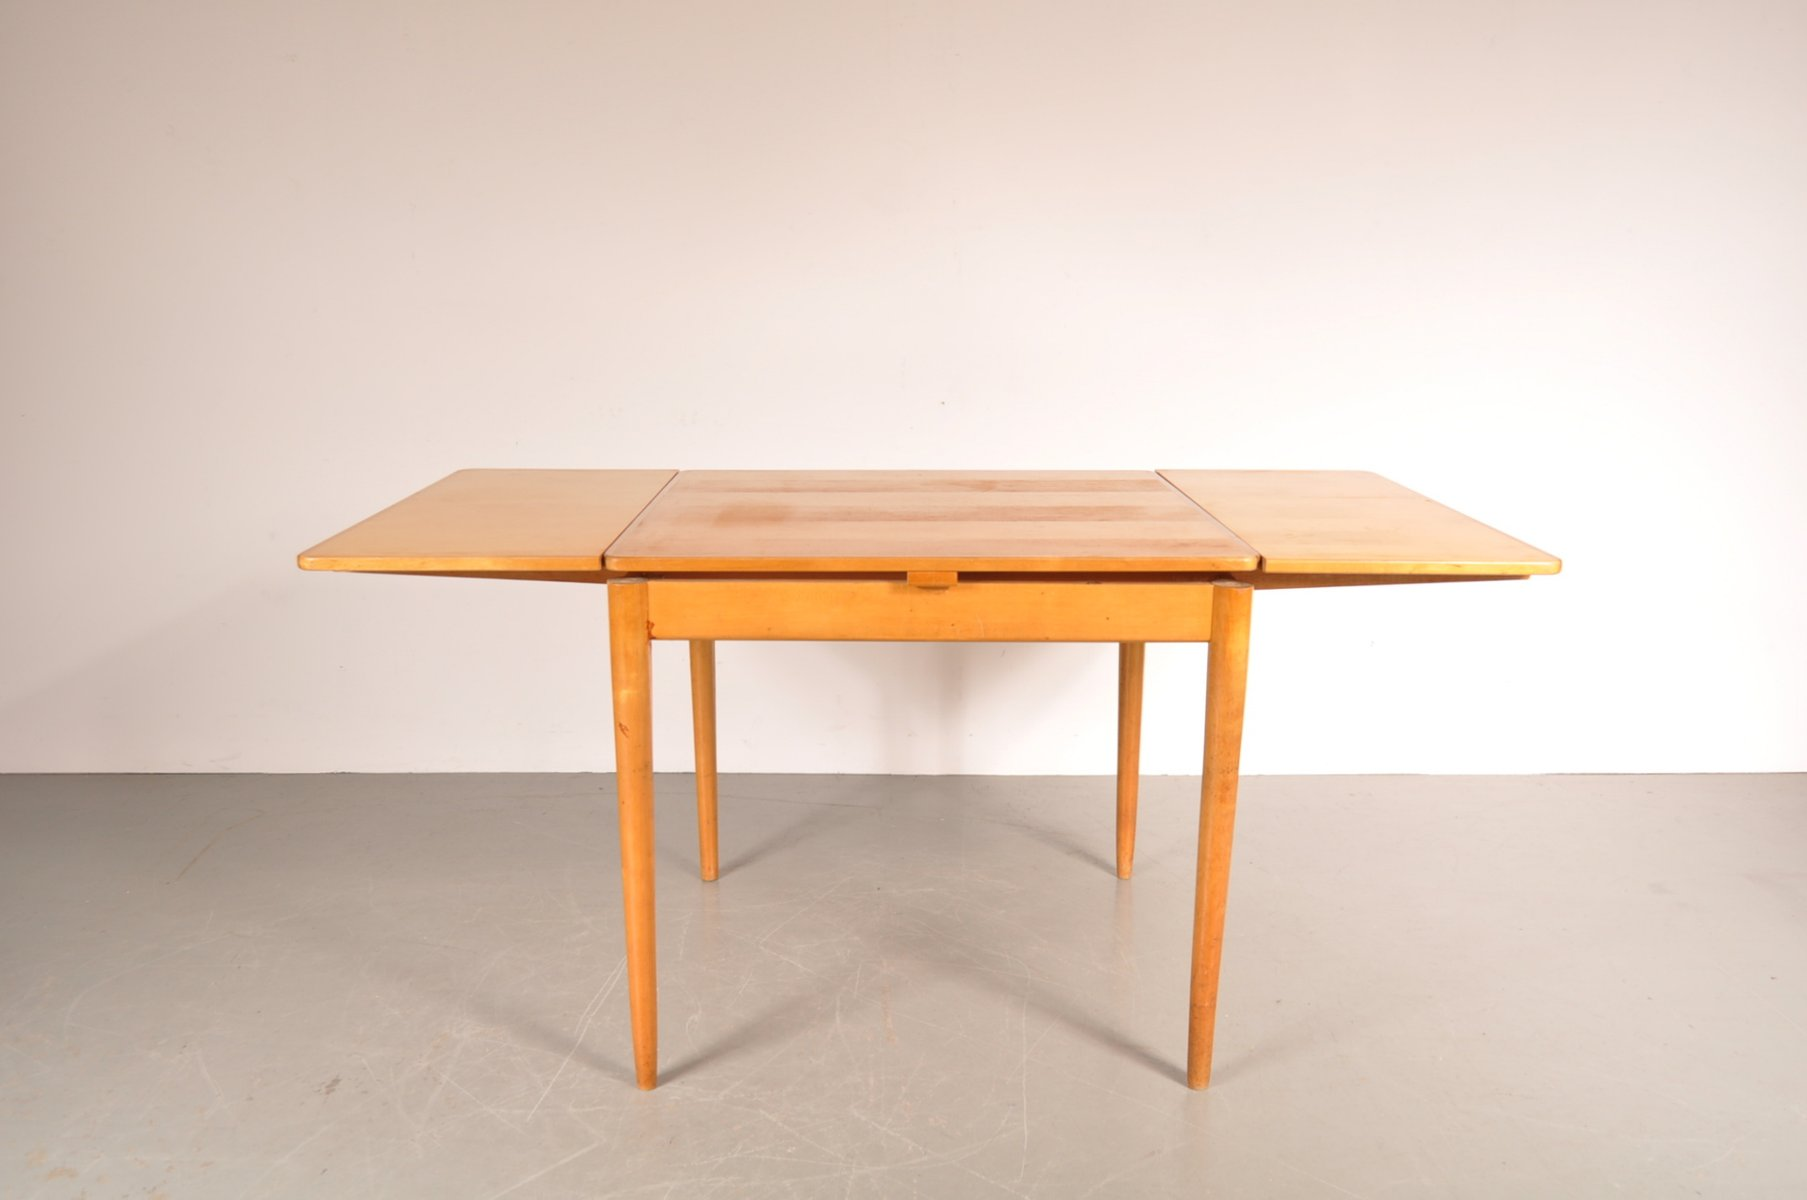 Table salle a manger extensible table salle a manger for Table de salle manger extensible